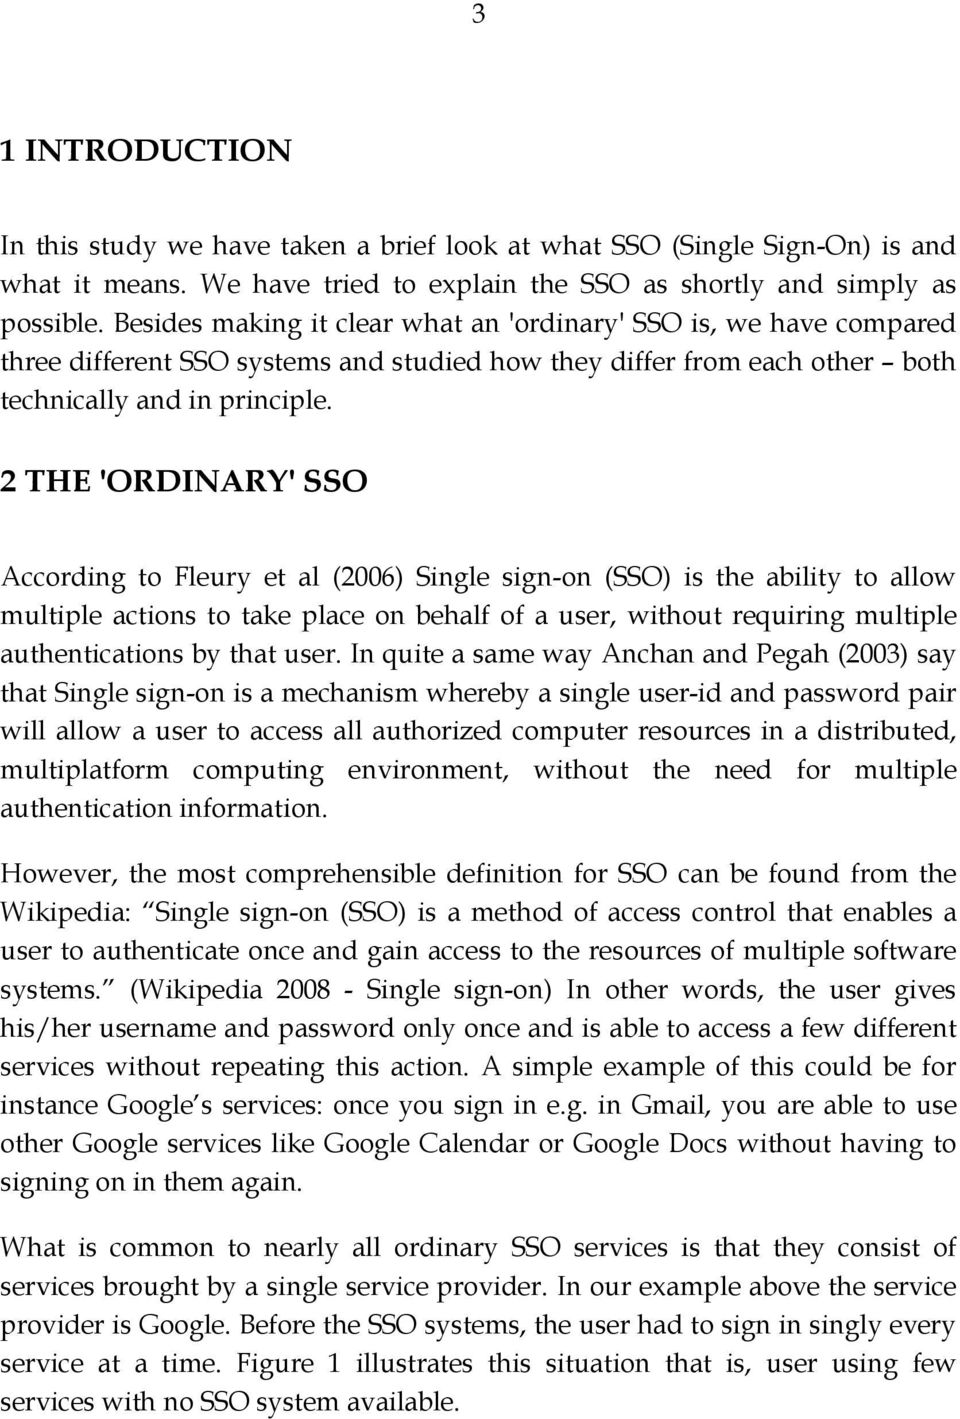 2 THE 'ORDINARY' SSO According to Fleury et al (2006) Single sign-on (SSO) is the ability to allow multiple actions to take place on behalf of a user, without requiring multiple authentications by